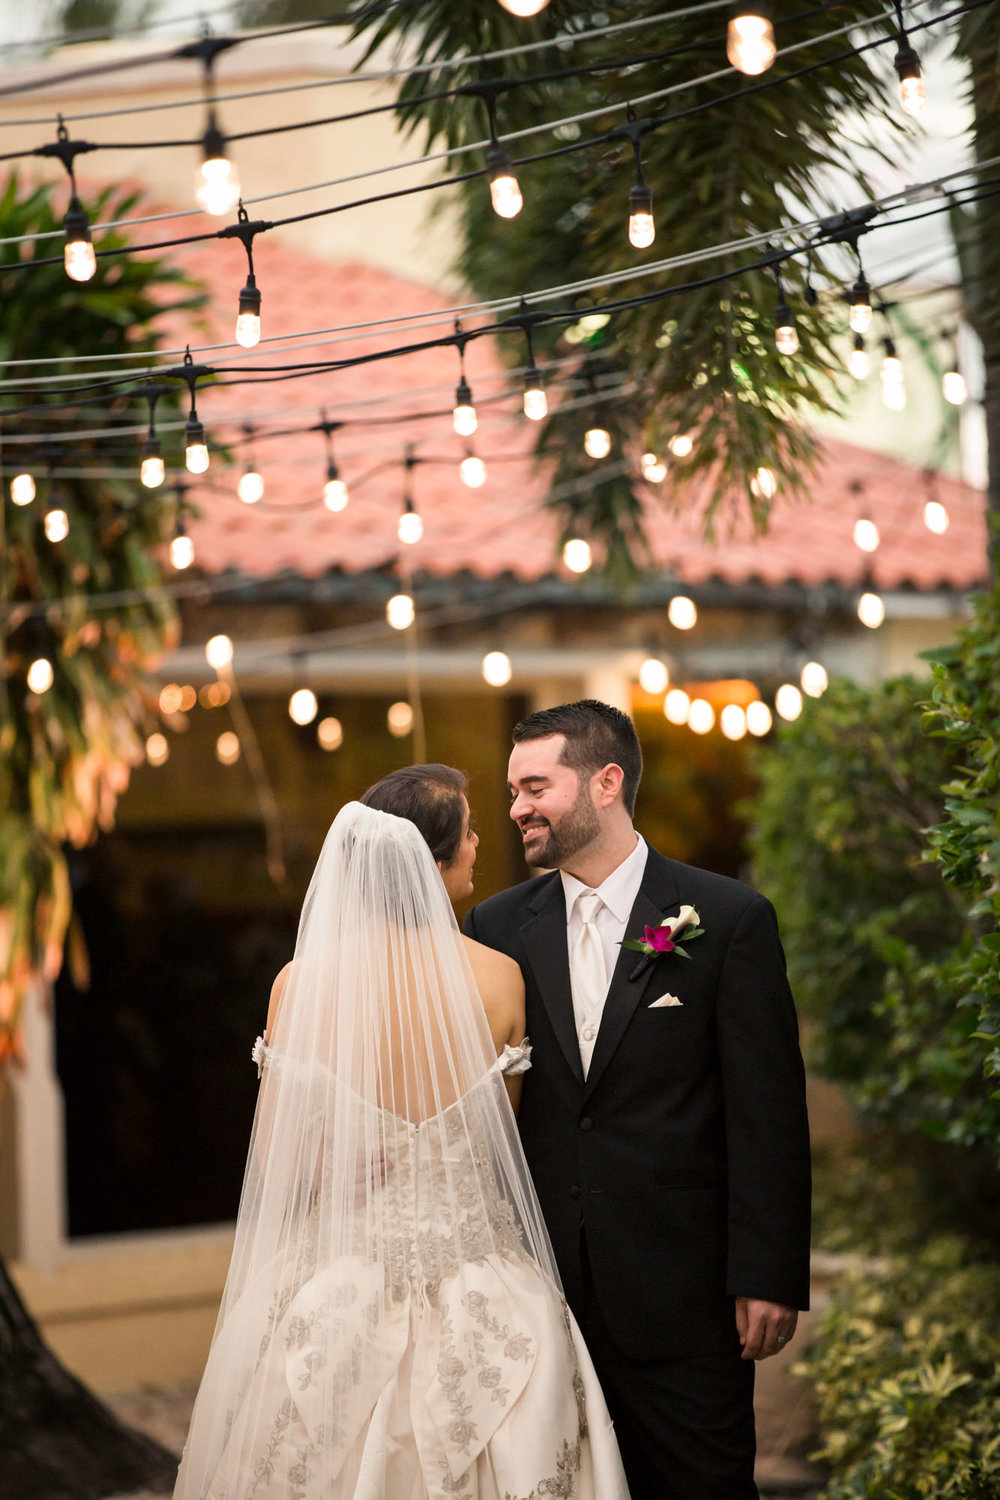 Benvenuto_Wedding_catholic_Florida_Bride-Groom-94.jpg